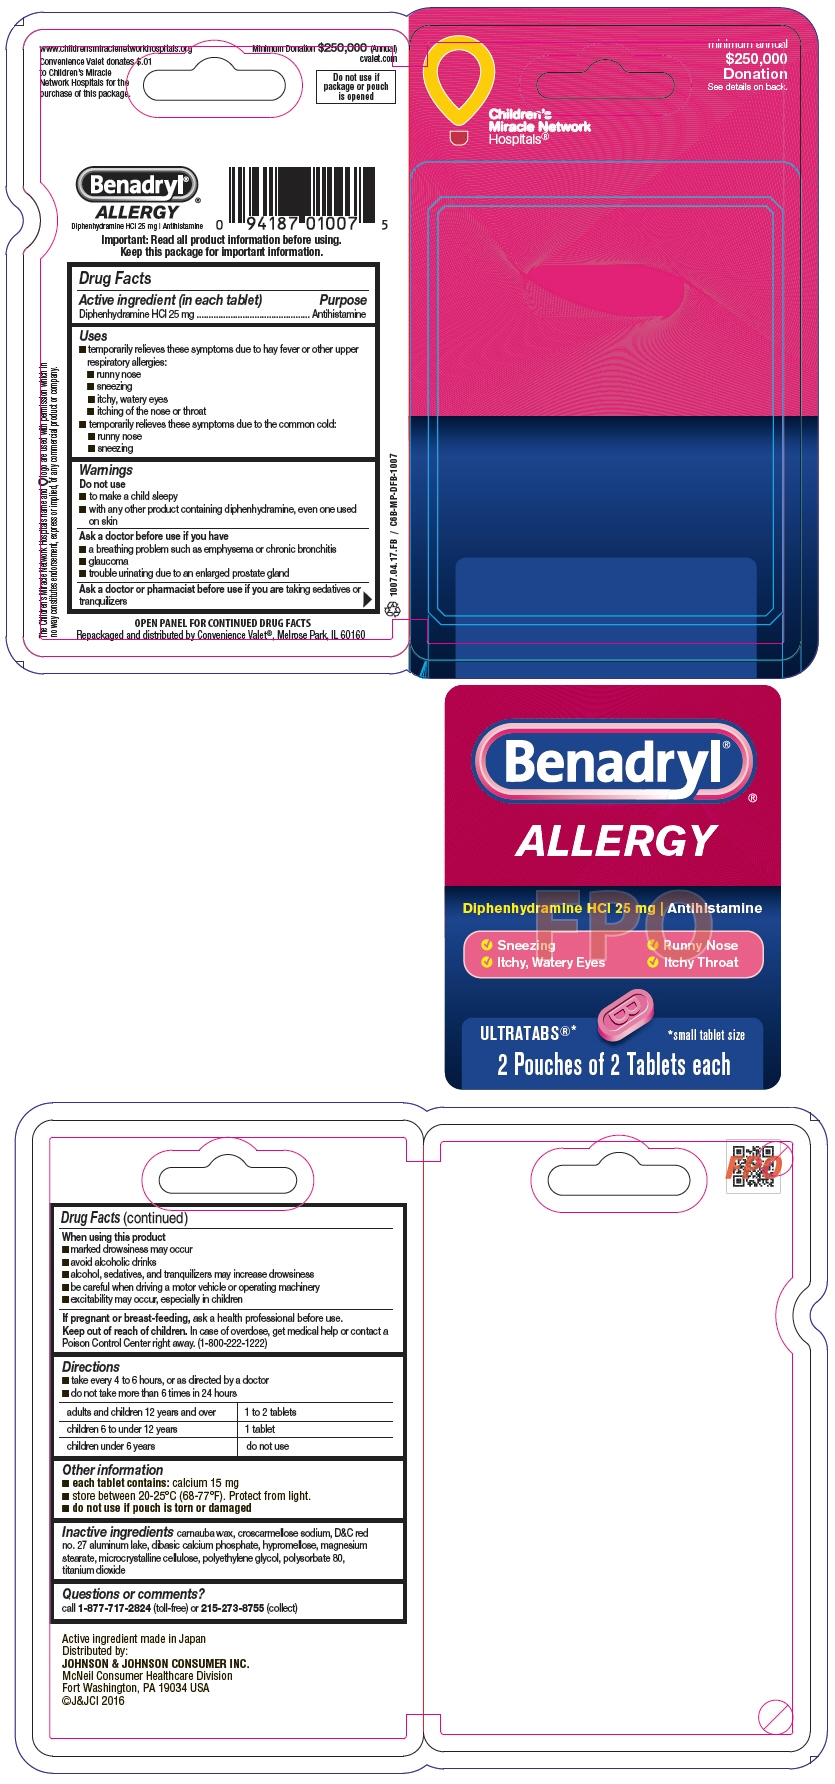 PRINCIPAL DISPLAY PANEL - 25 mg Tablet Pouch Package